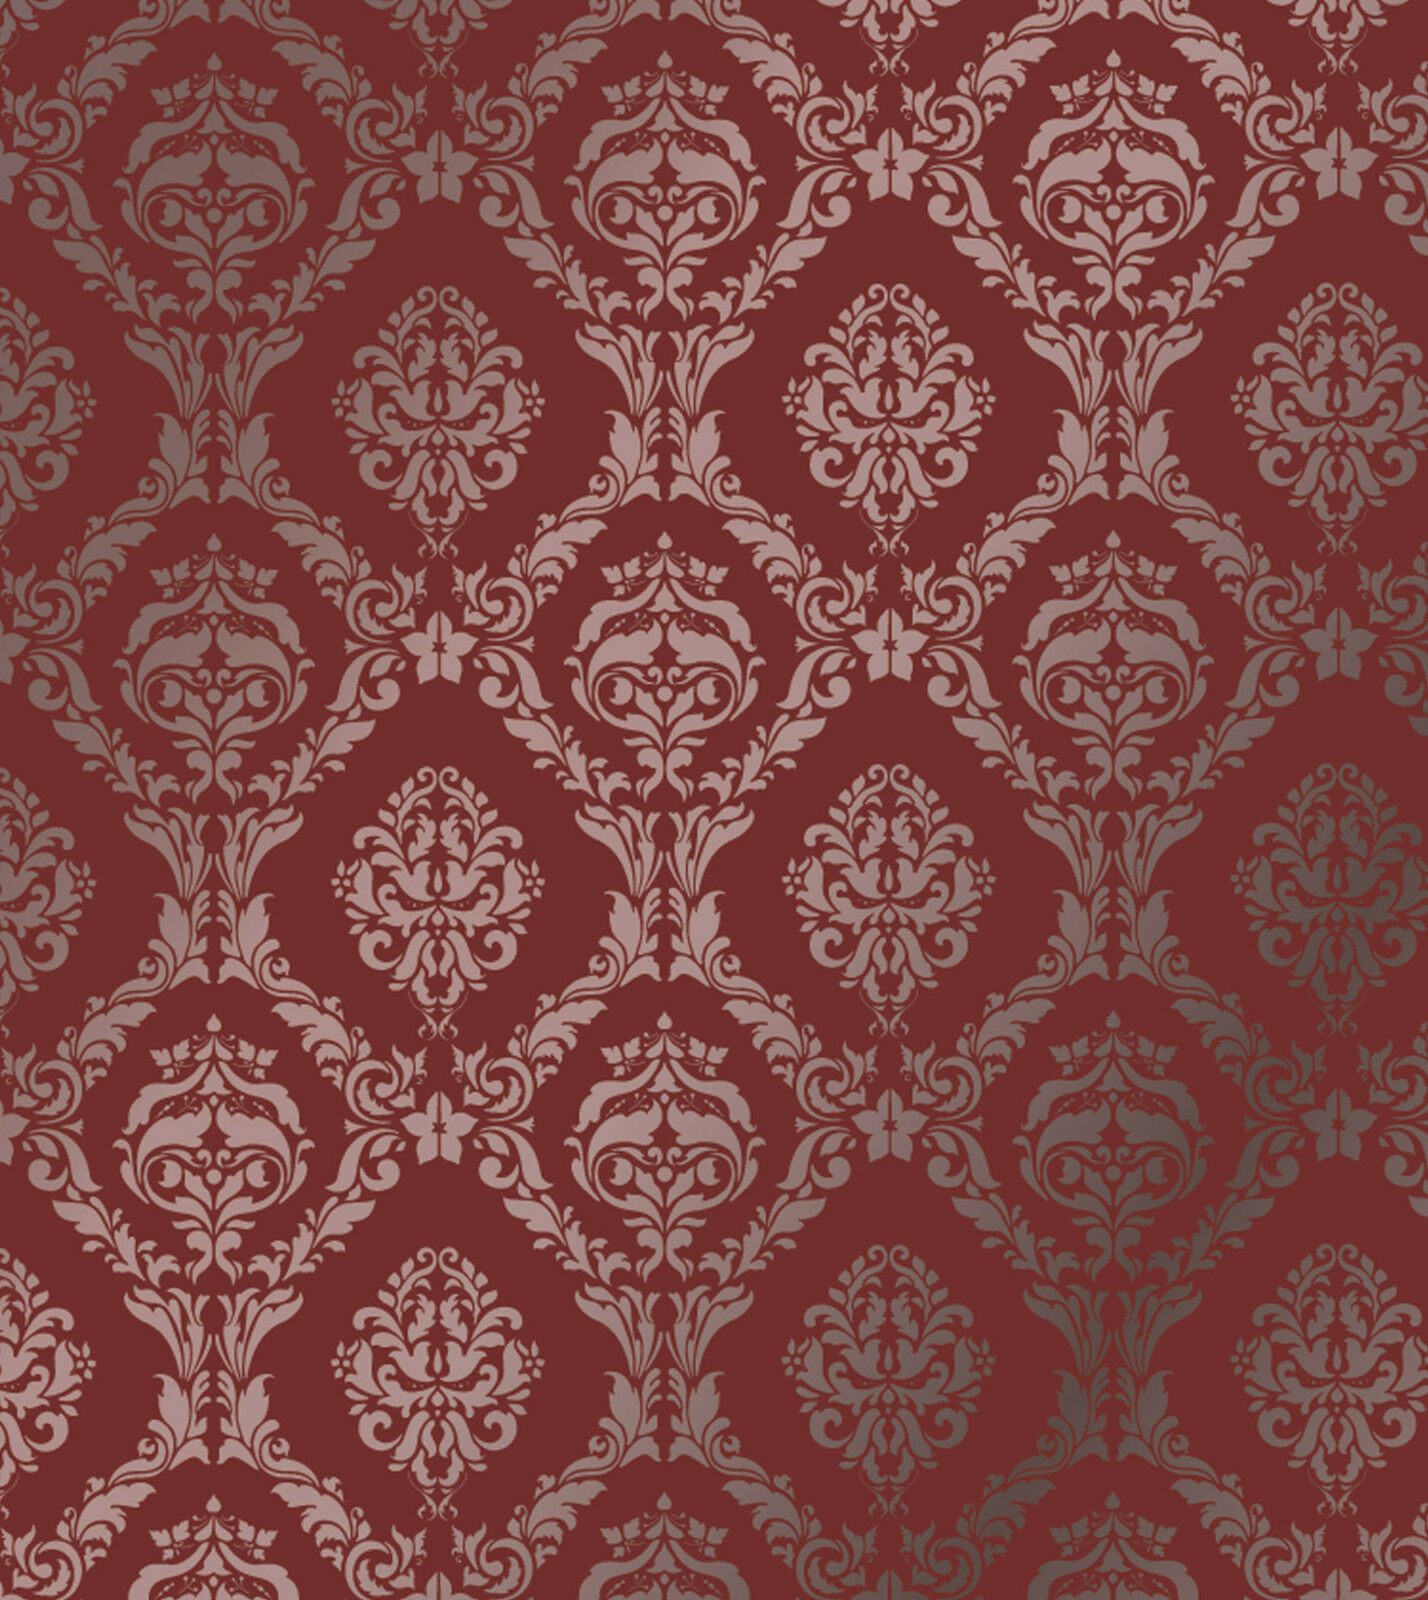 Large wall damask mylar stencil pattern faux mural decor 1007 choose size picclick - Design patterns wall painting ...